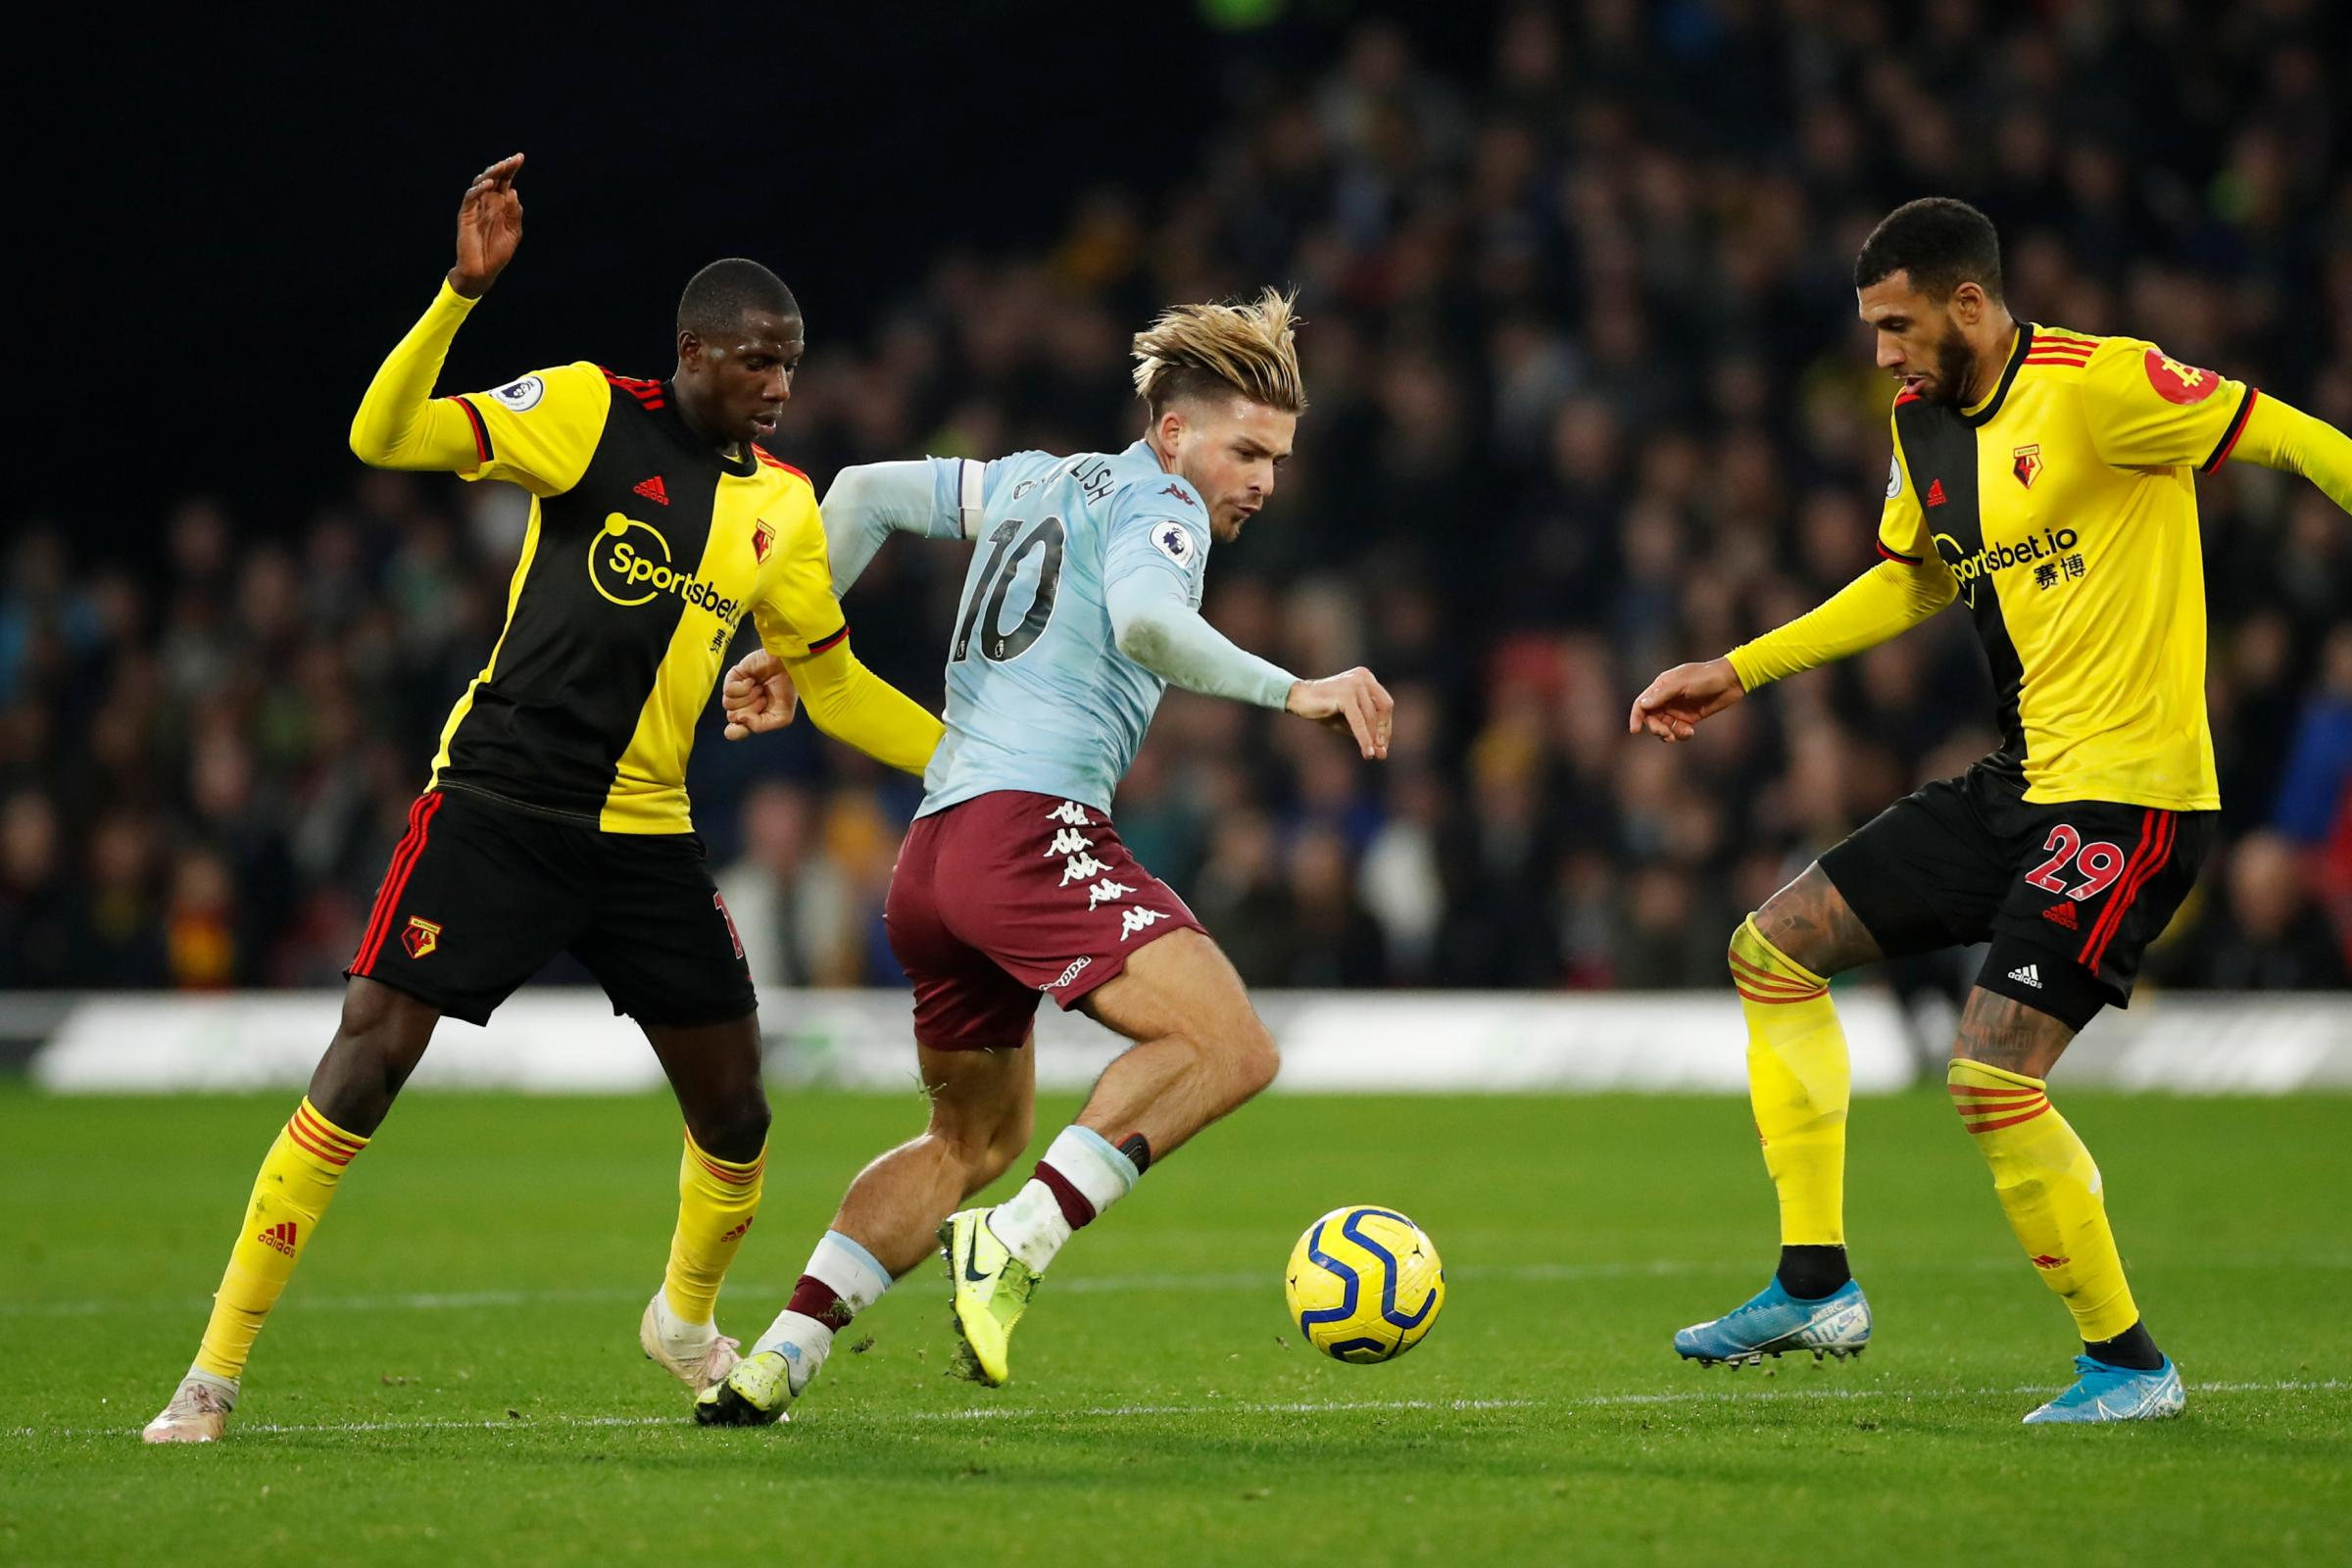 Watford have 'healthy respect' for Aston Villa's Jack Grealish, says Nigel Pearson